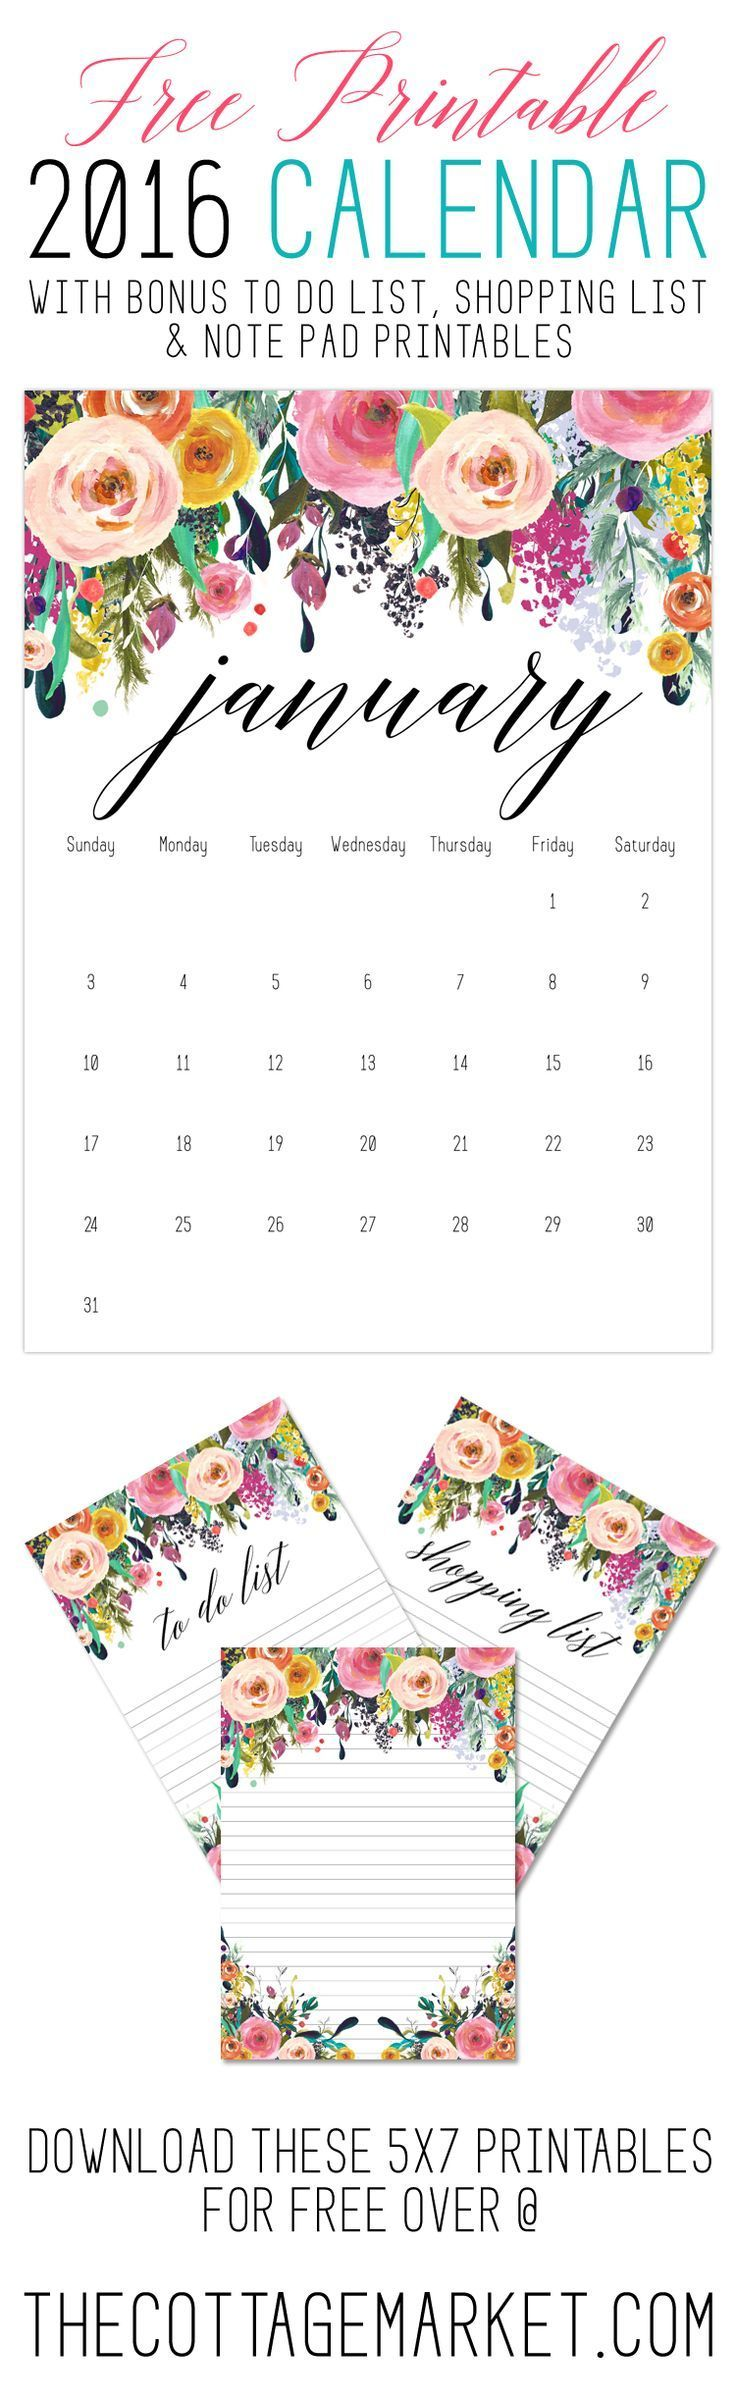 Free Printable 2016 Calendar /// with Bonus Free To Do List, Shopping List & Note Pad Printables